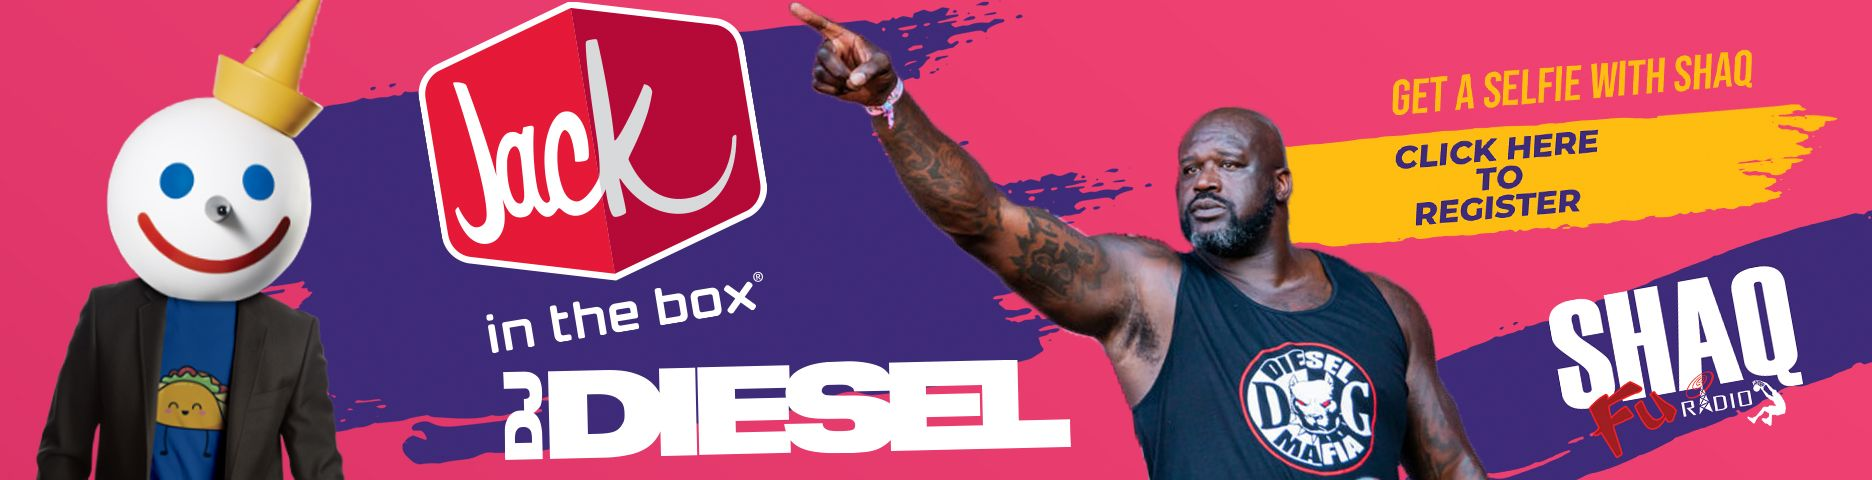 https://shaqfuradio.com/wp-content/uploads/2021/08/jack-in-the-box-shaquille-oneal-tiny-taco-dj-diesel-vip-contest.jpeg